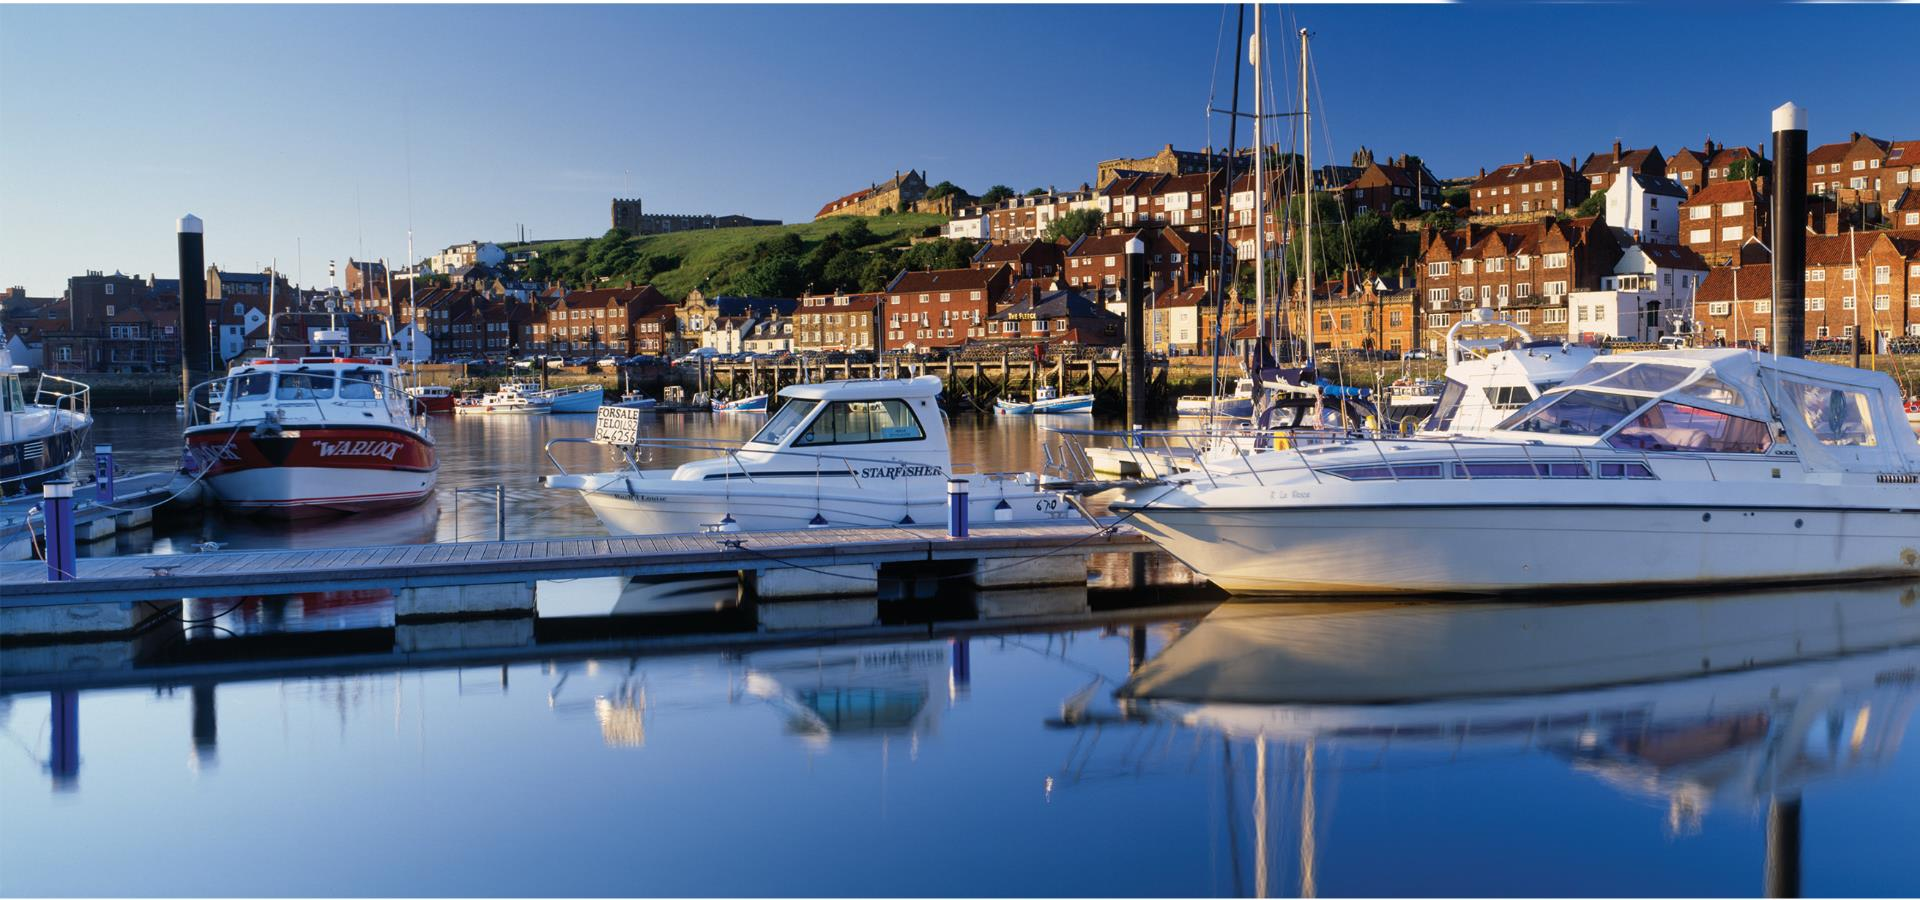 An image of Whitby Harbour